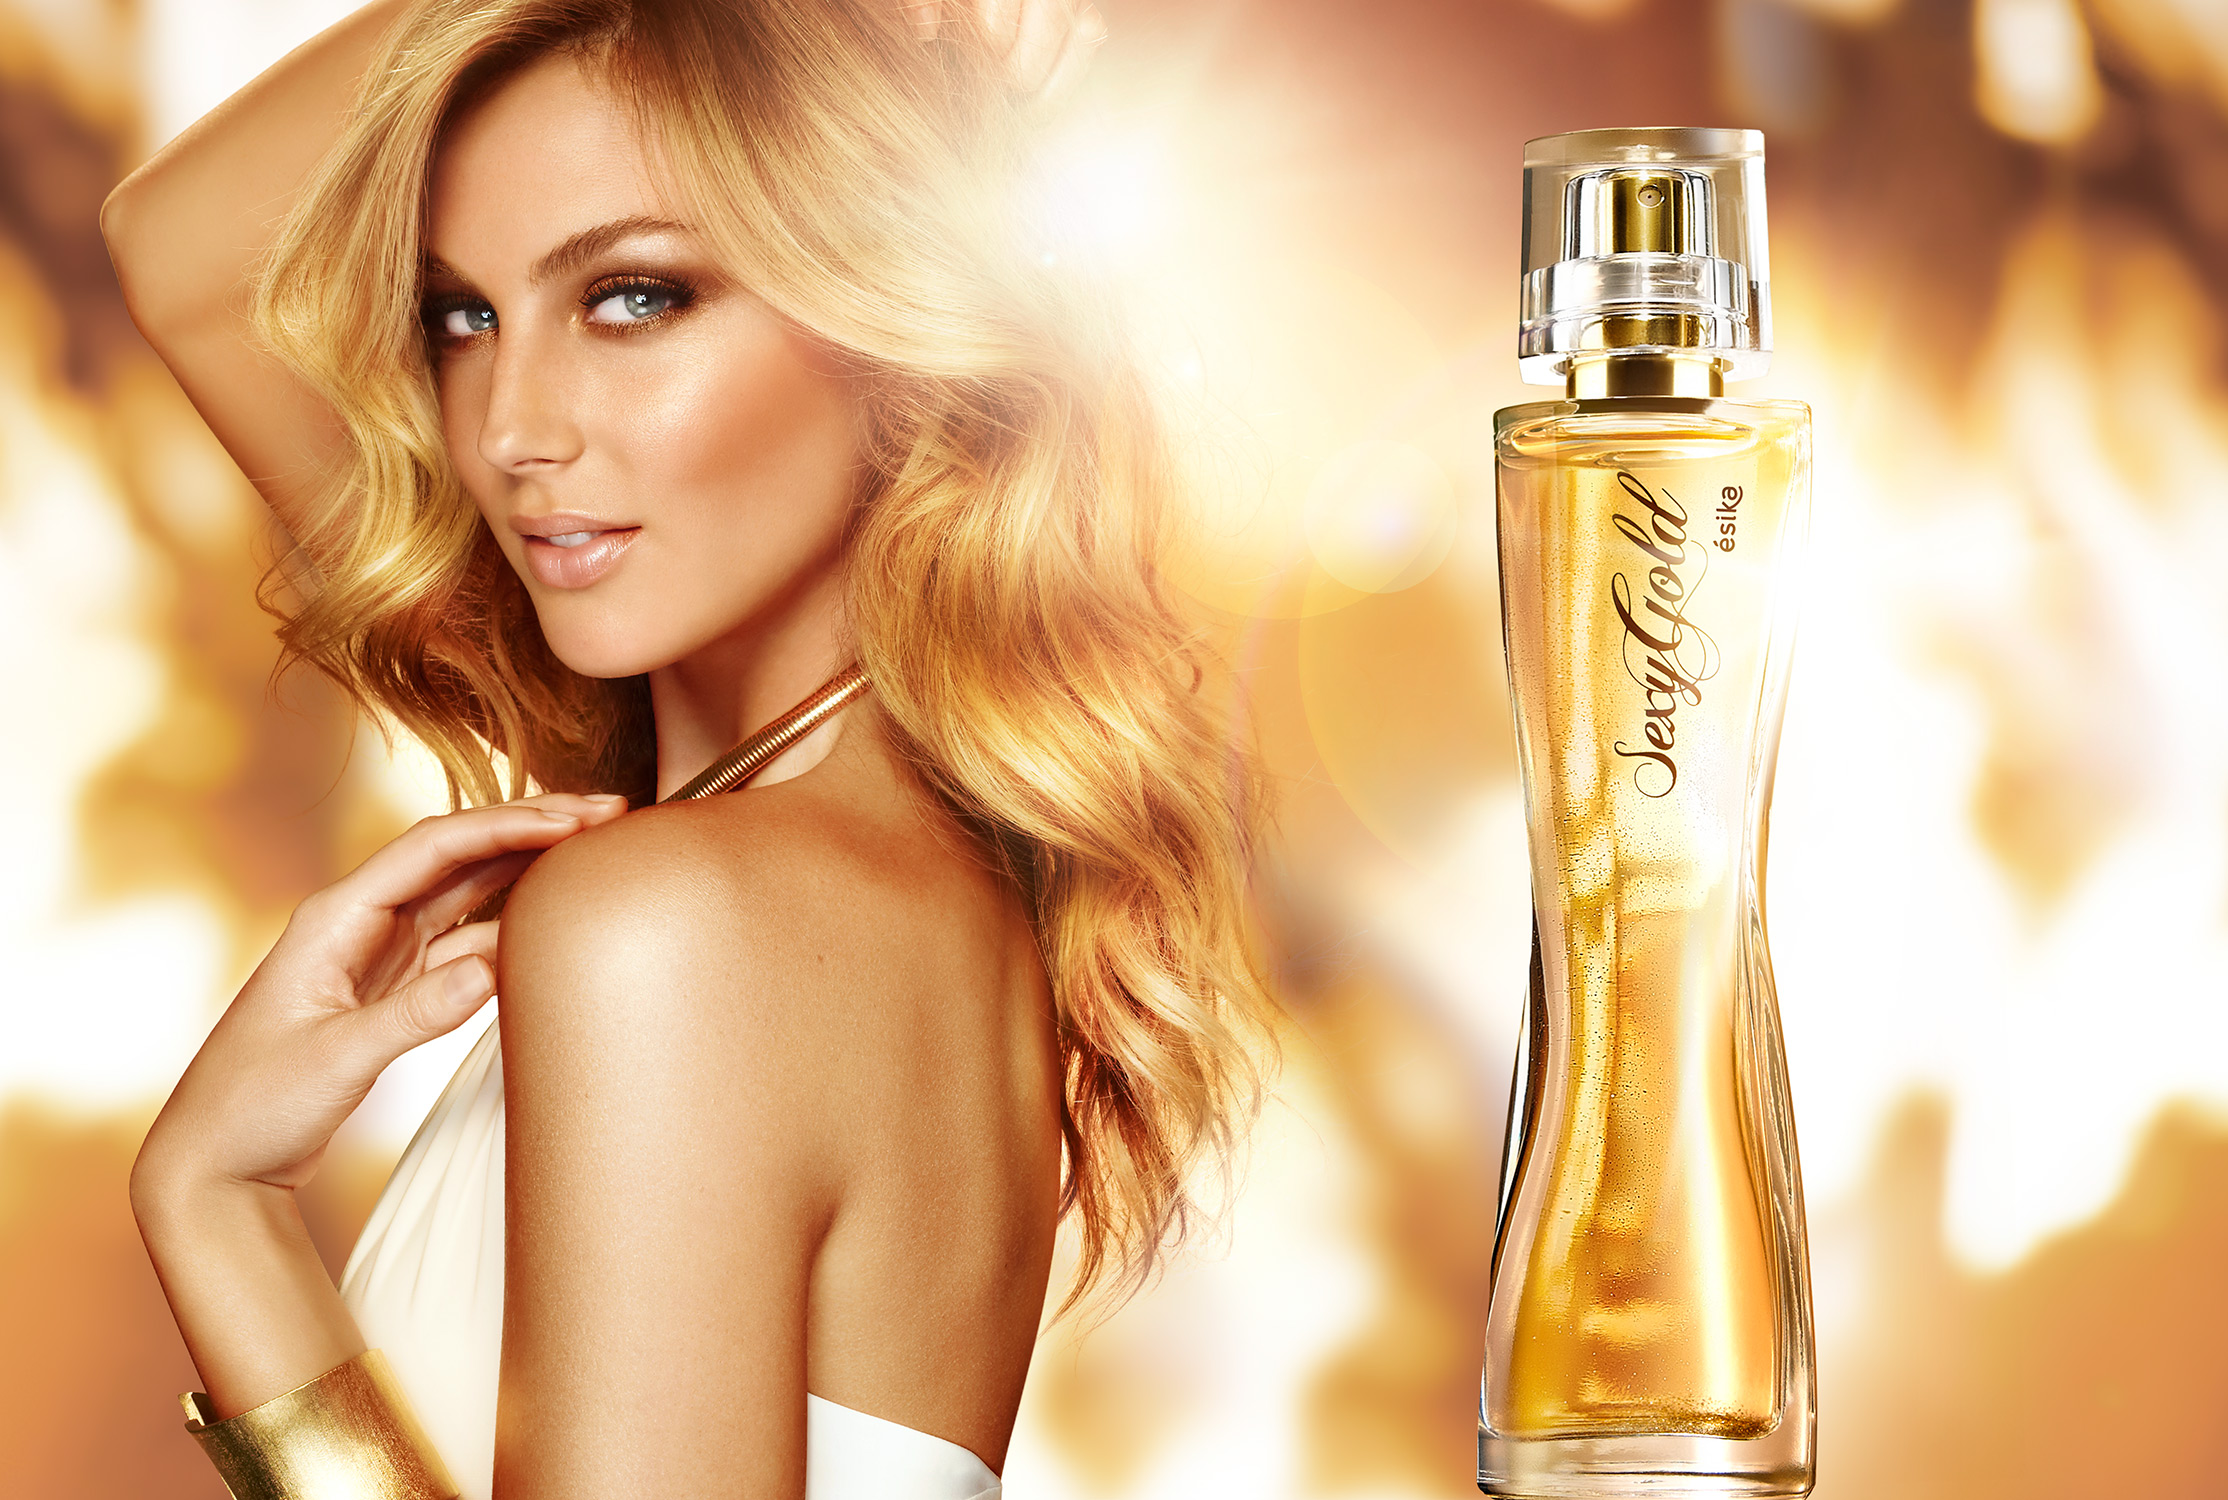 ES_Fragrance_Ads_002